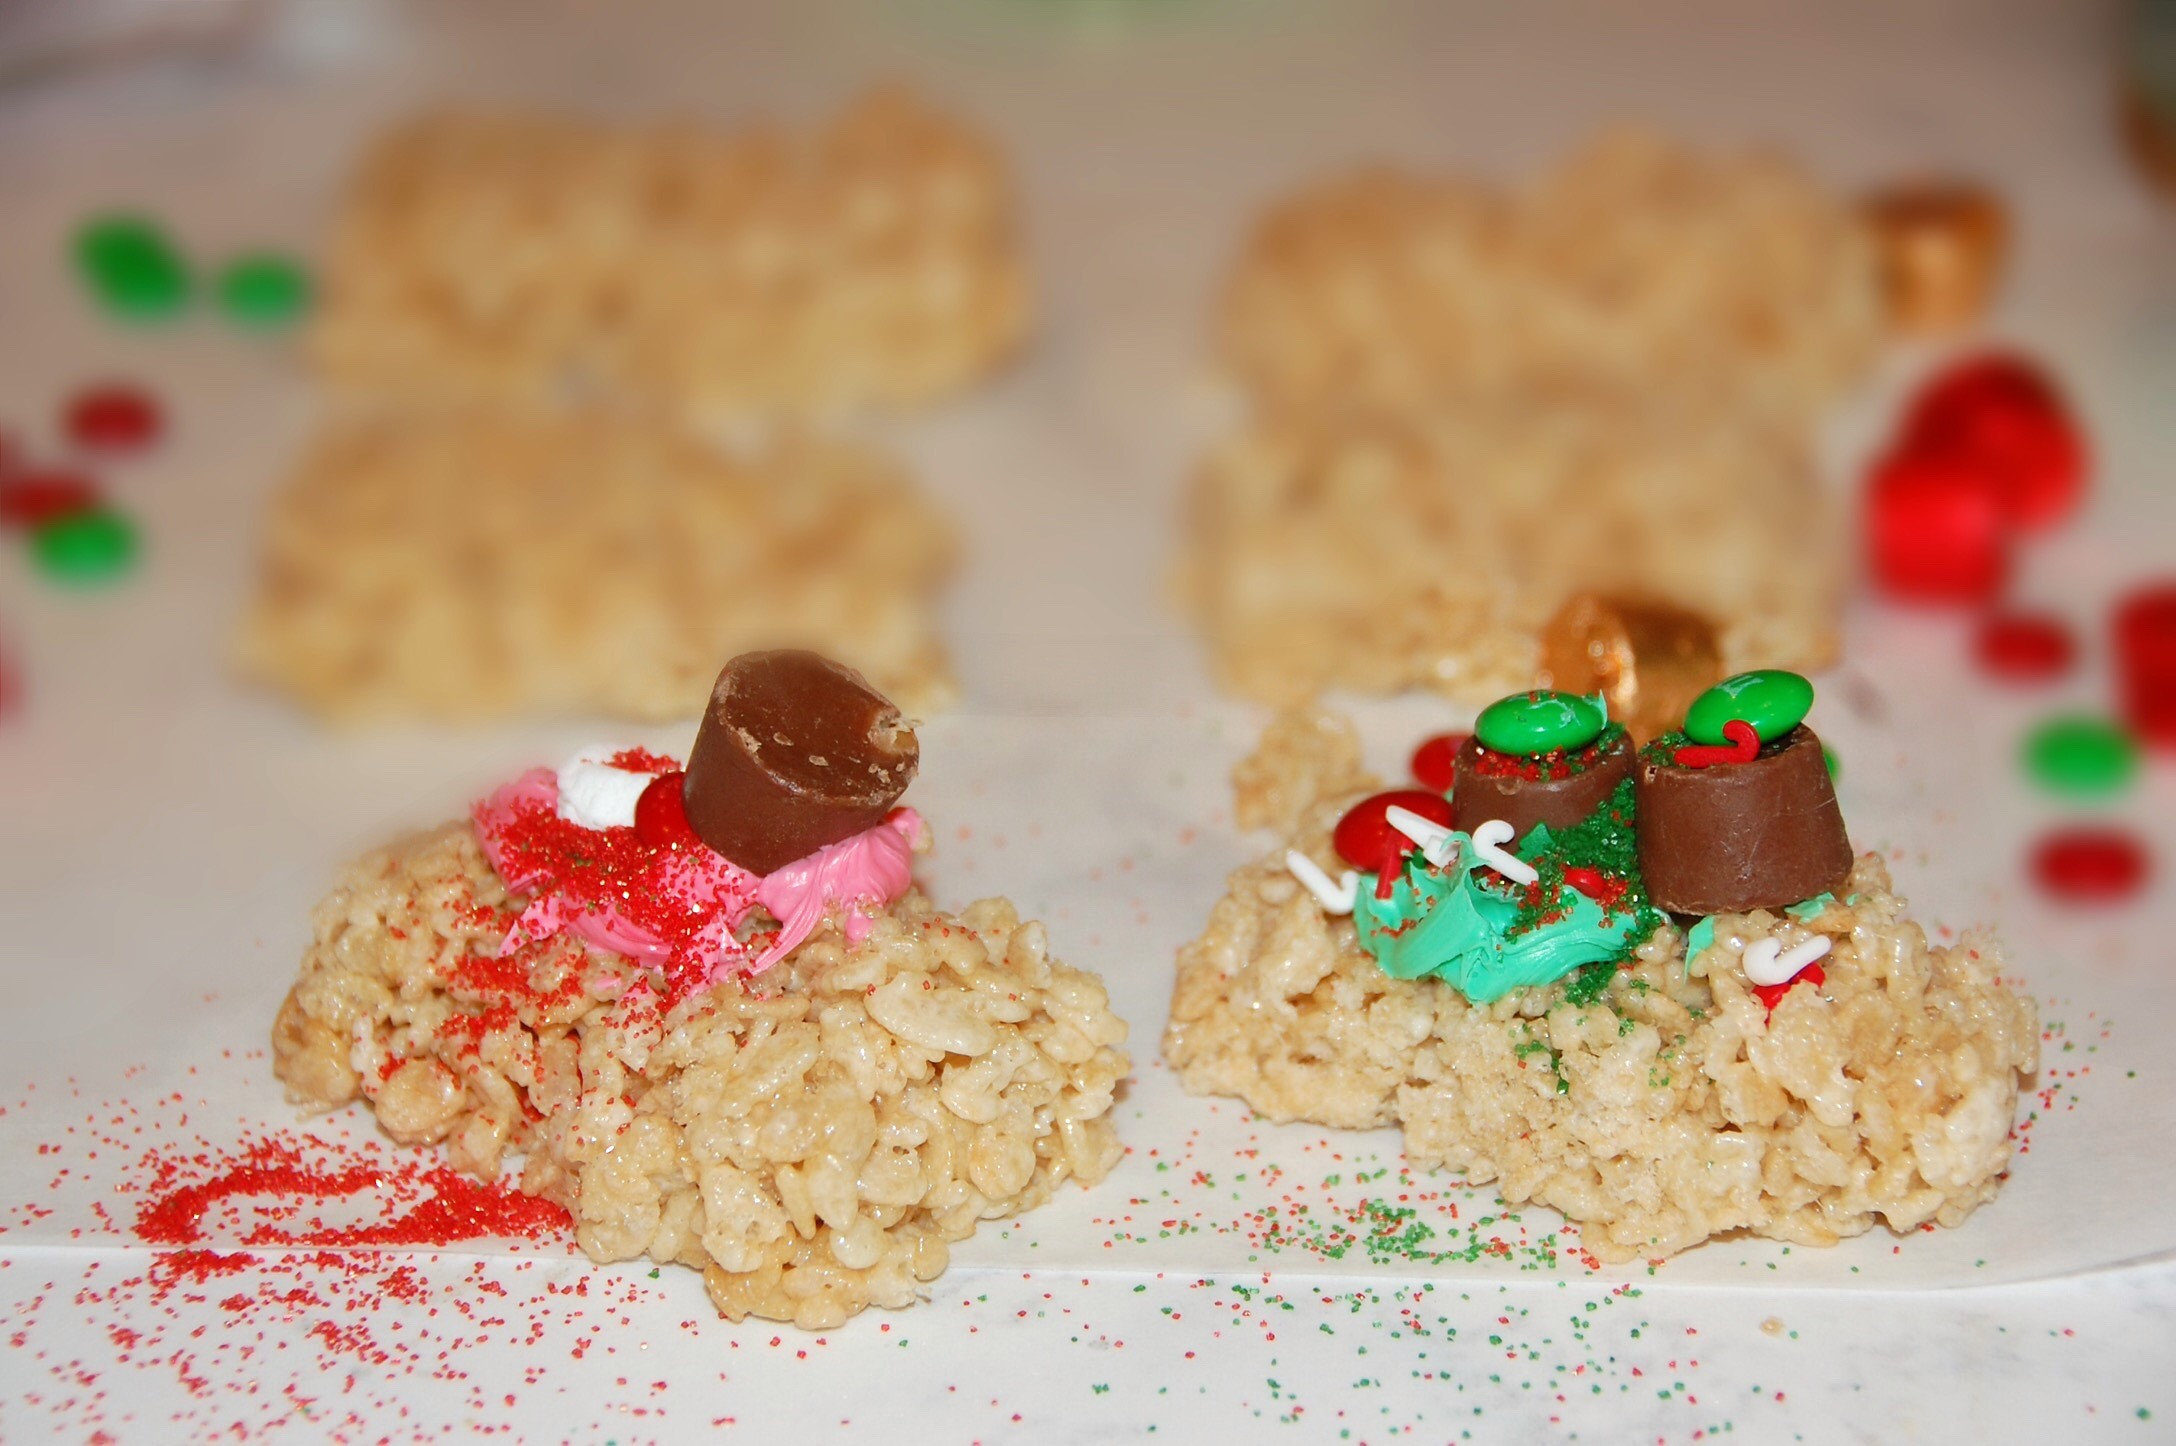 Holiday Rice Krispies Treats made by kids